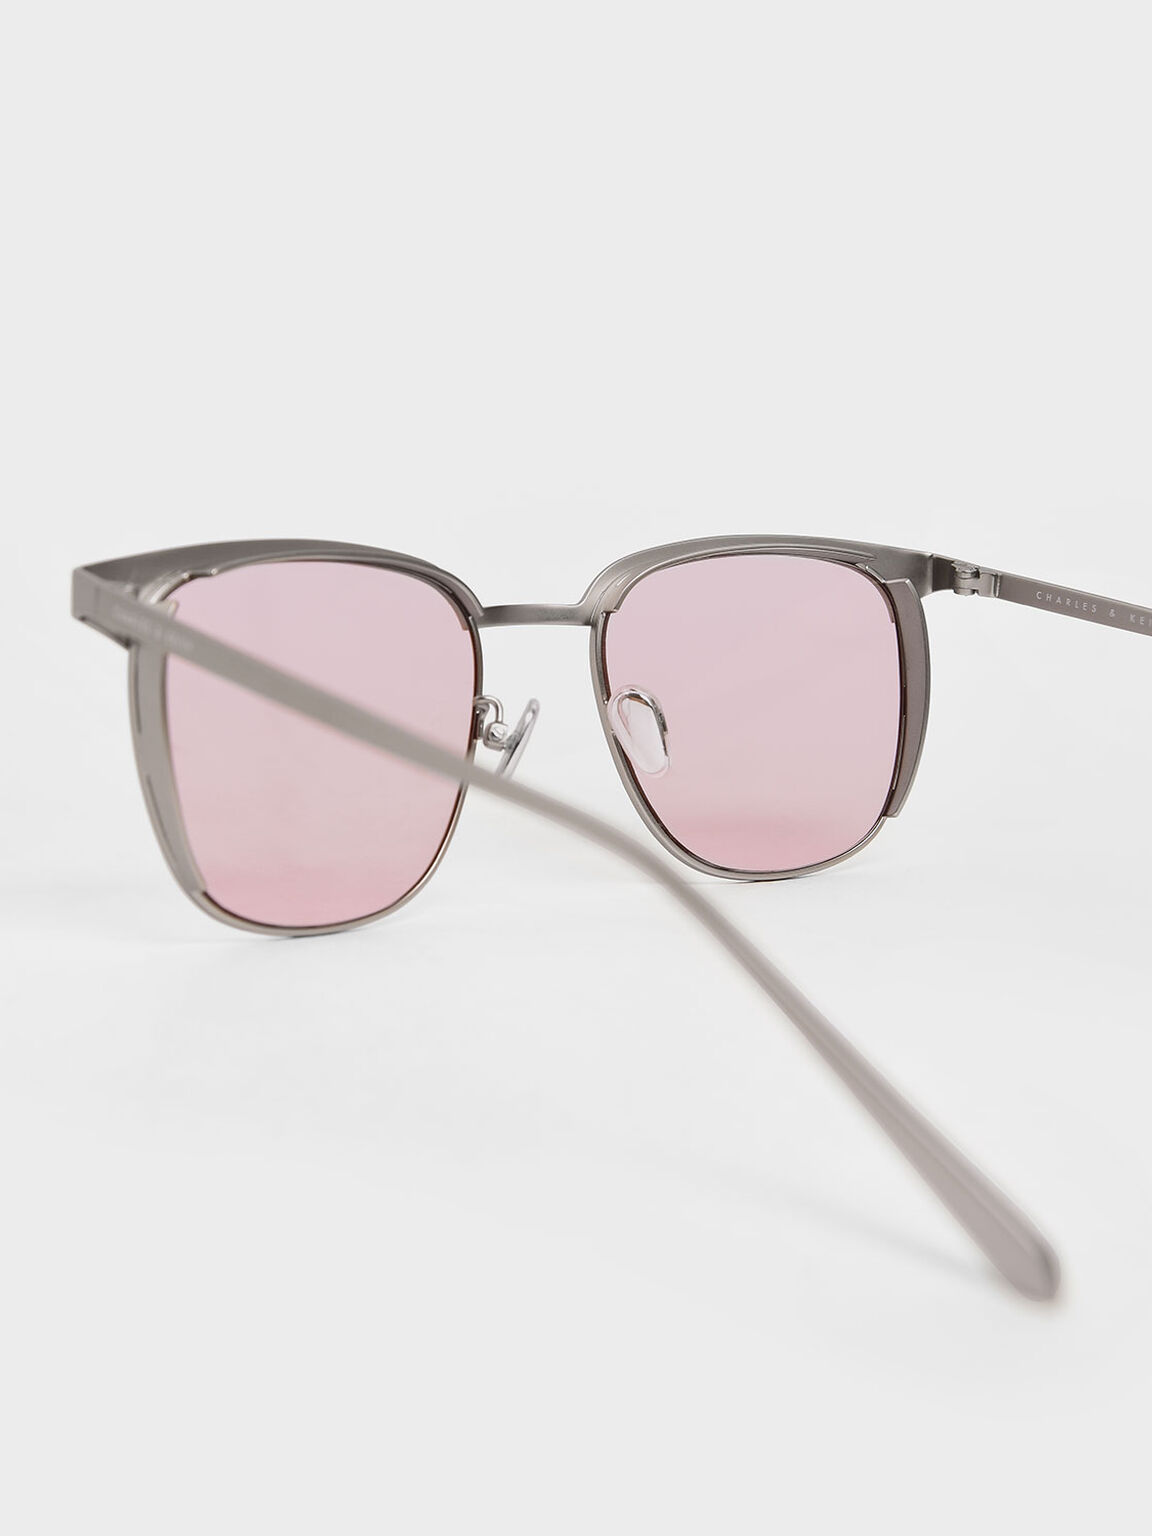 Tinted Rectangular Sunglasses, Pink, hi-res